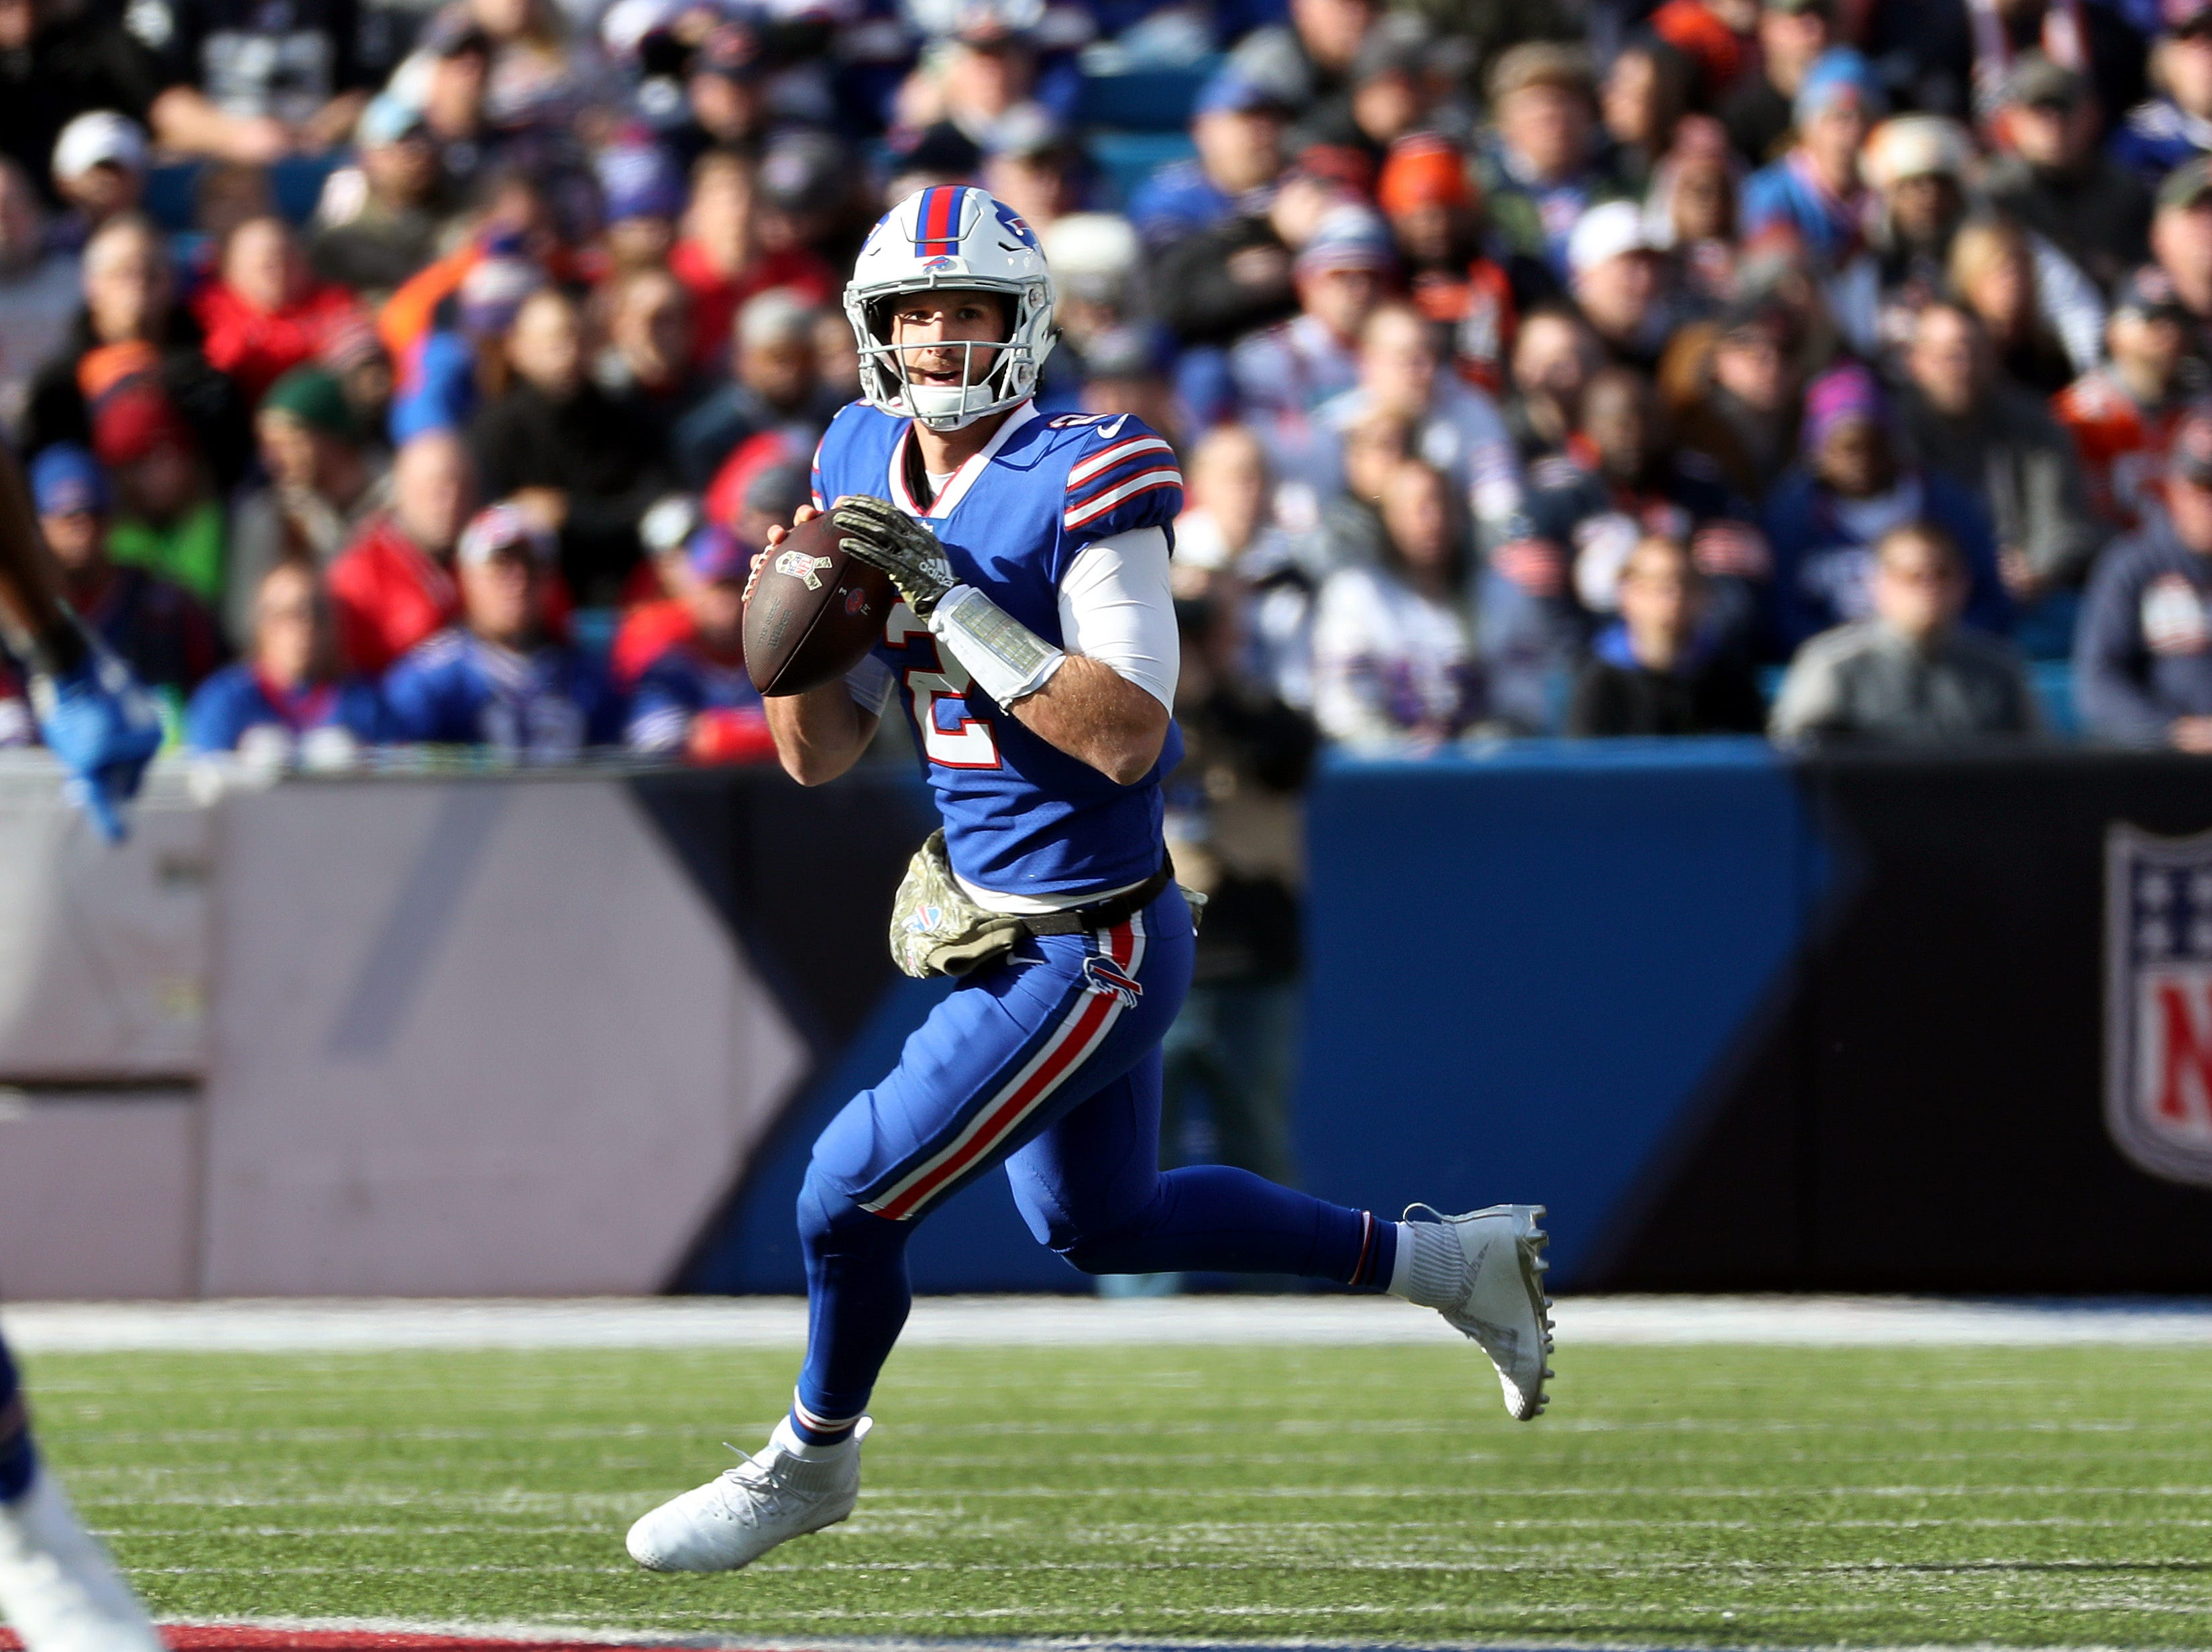 Bills quarterback Nathan Peterman rolls to his right as he looks downfield.